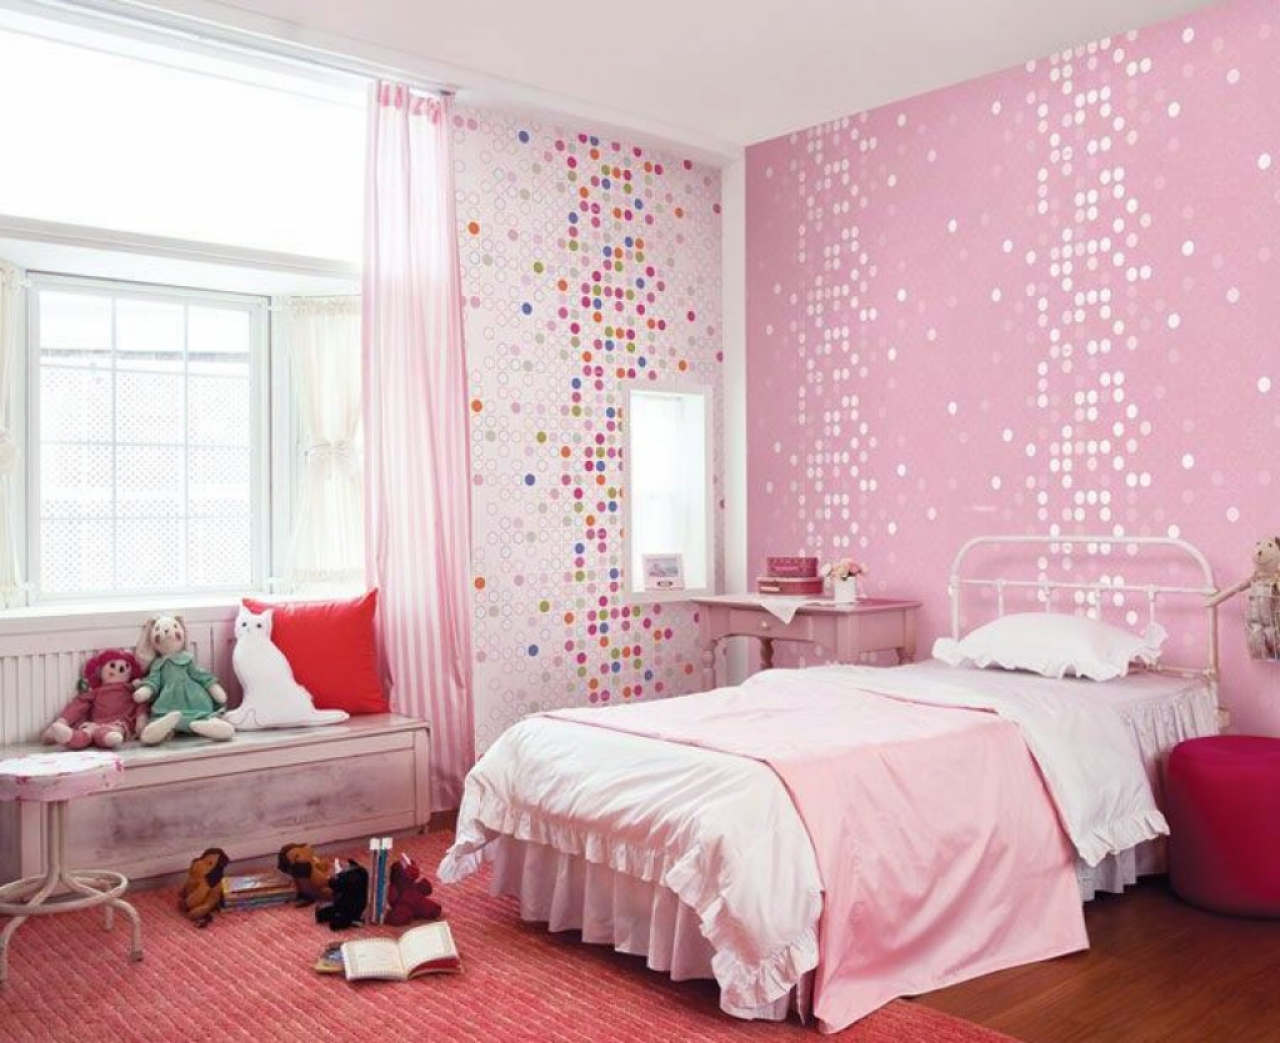 Wallpaper for Girls Room - WallpaperSafari